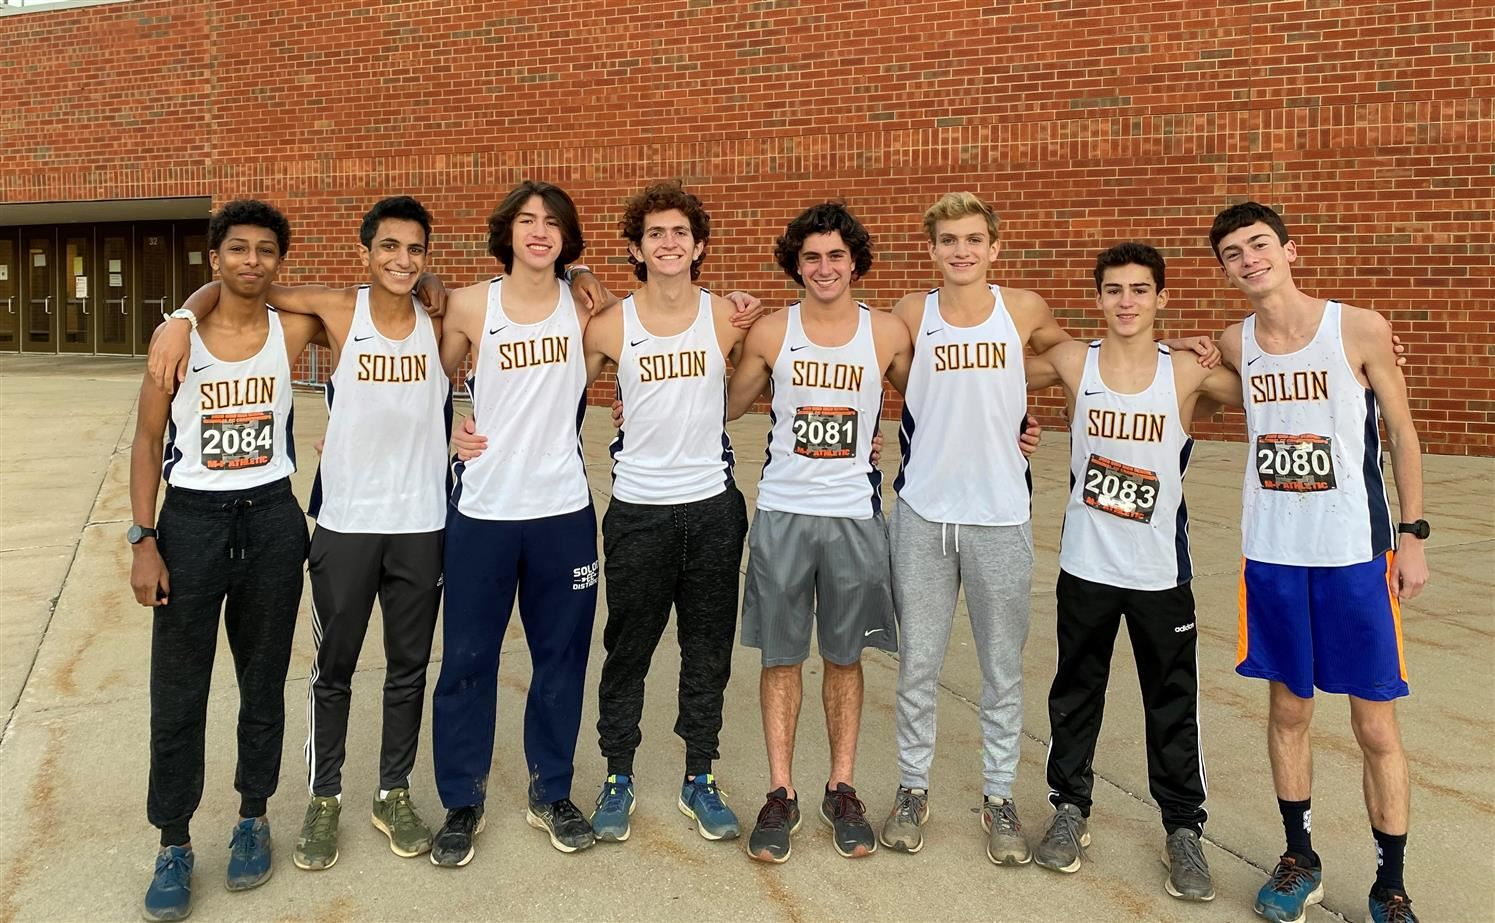 Boys Cross Country - State Qualifiers     -  Joshua Baker, Jonny Ciccero, Nathan Close, Ryan Goldfeder, James Howell, Charlie Kasper, Adam Yousef, Colon Wong